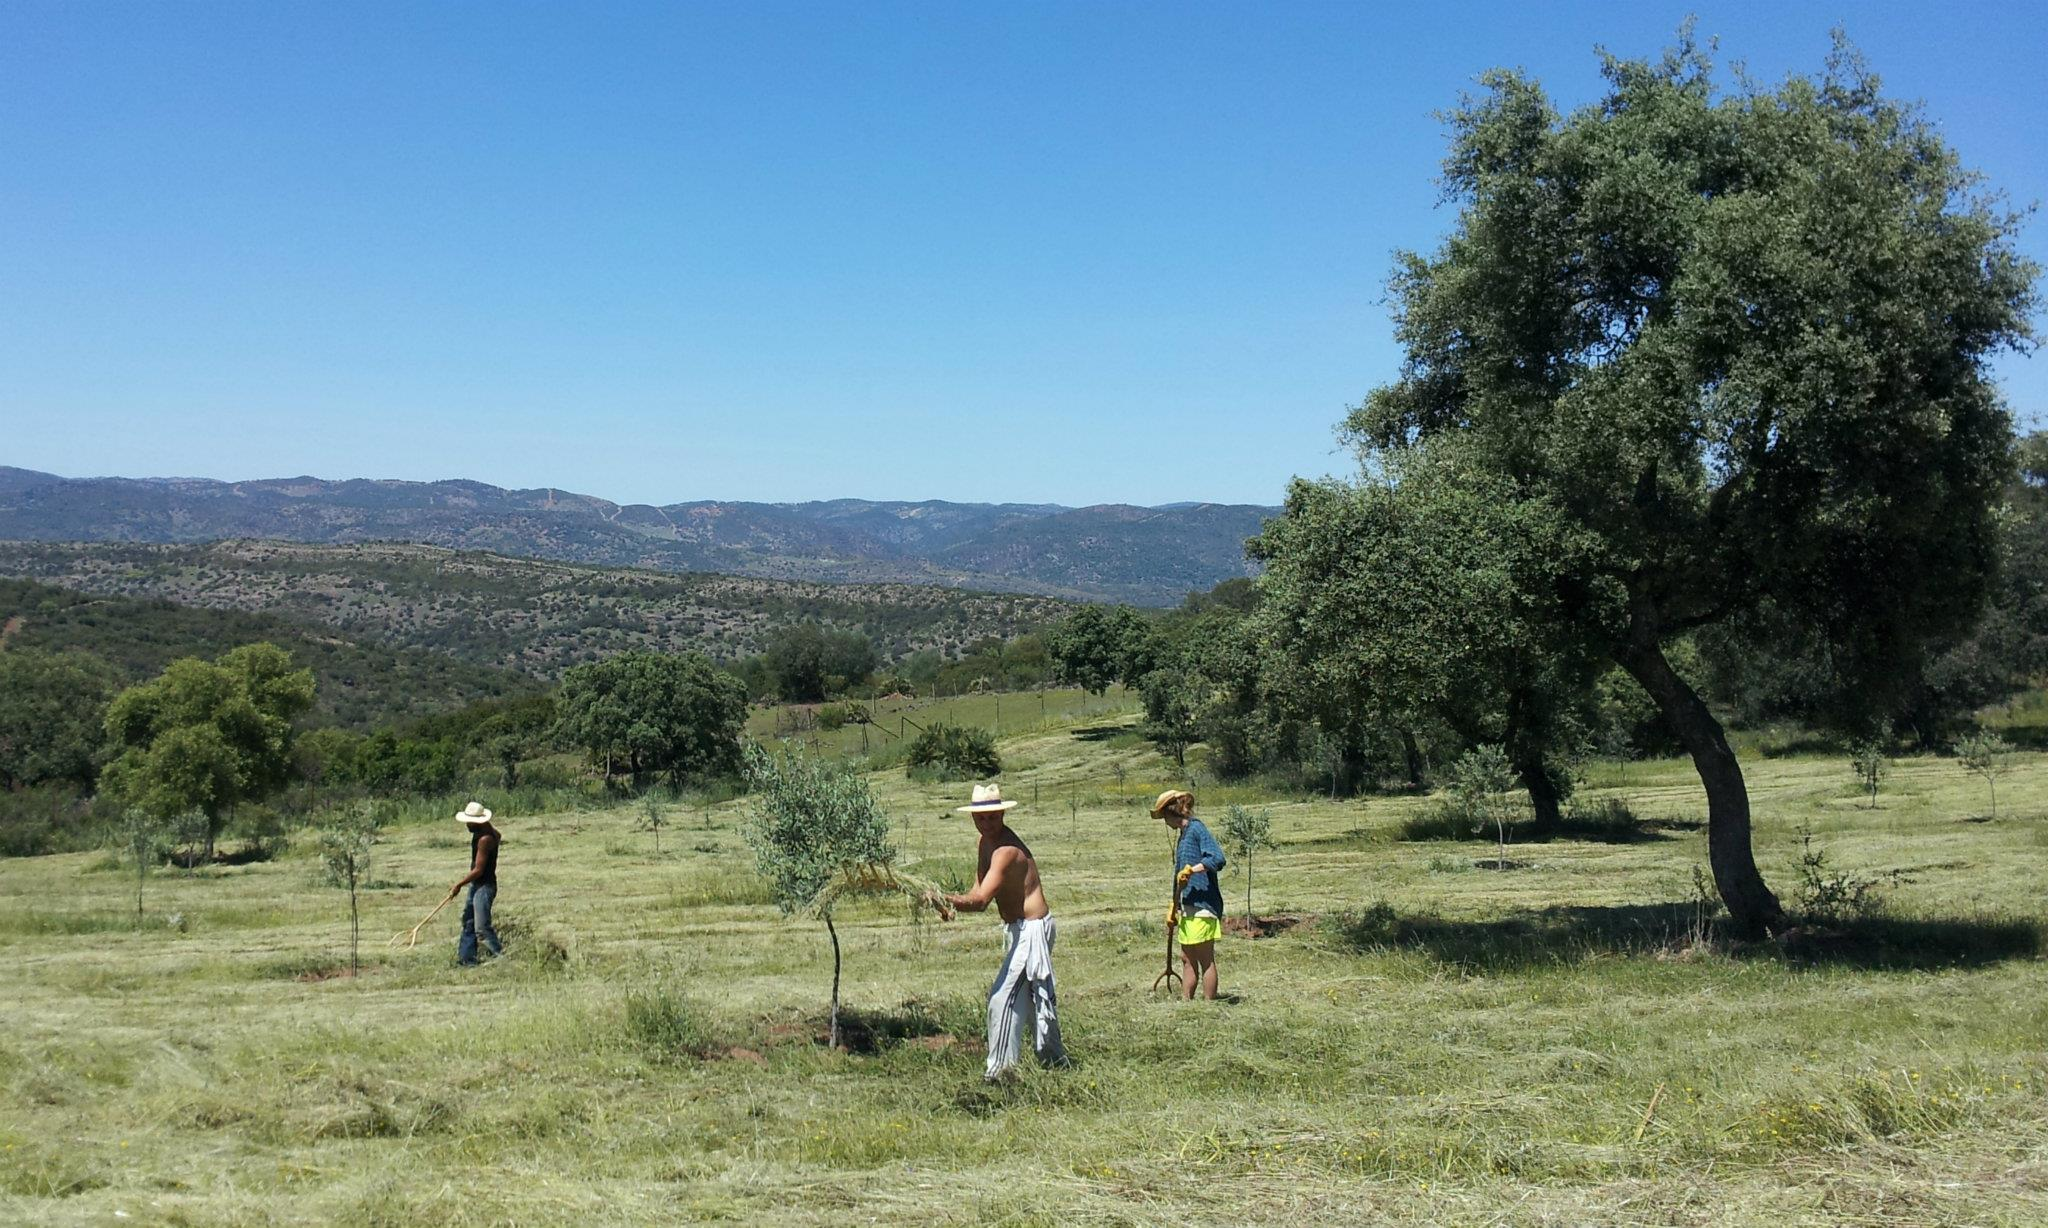 Facendo wwoofing in Andalusia